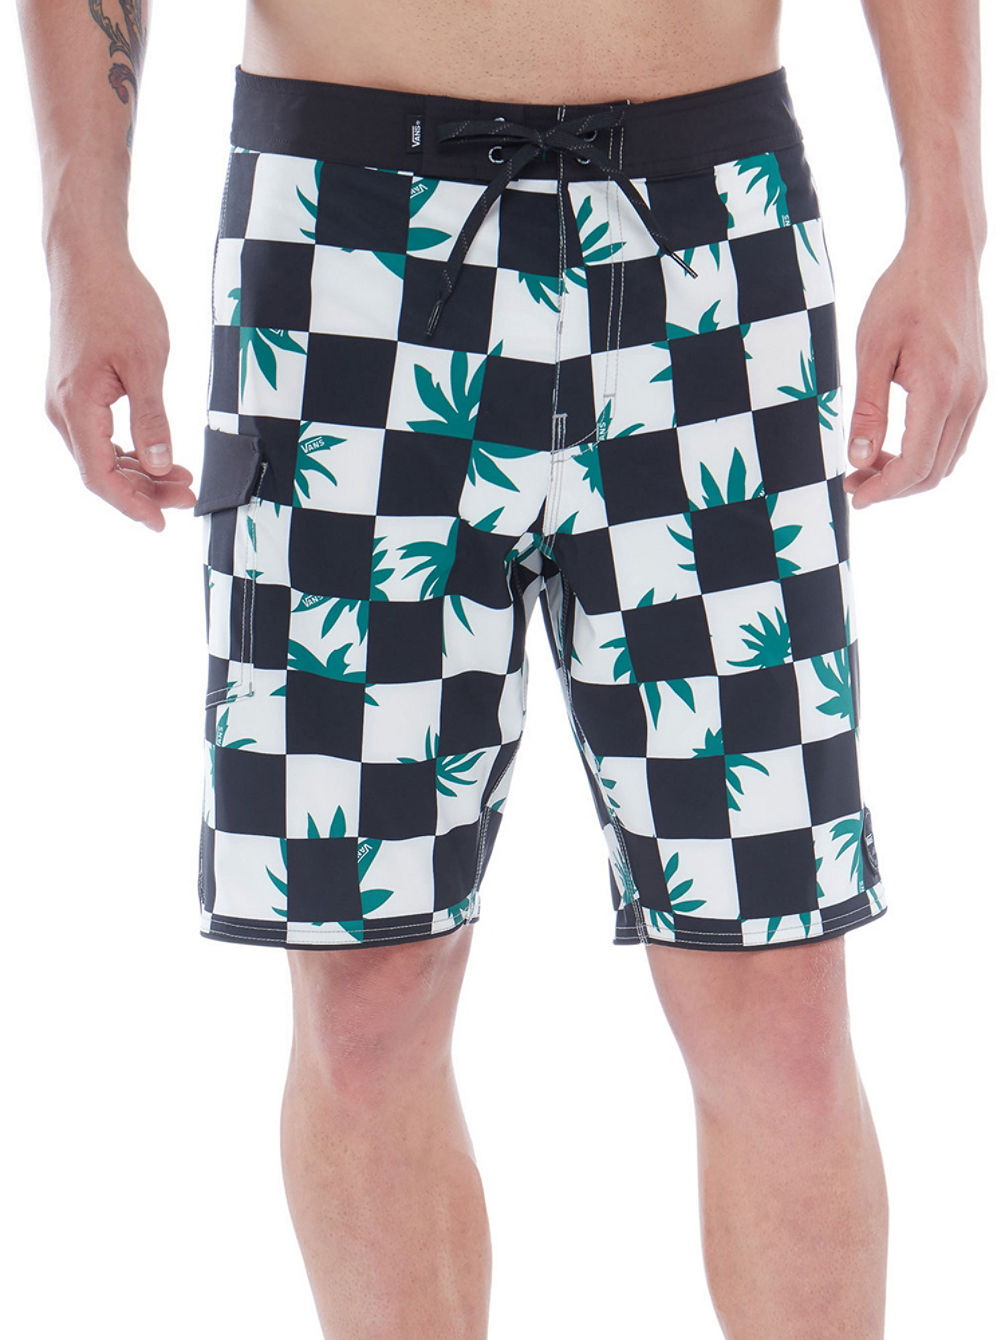 Checkerboard Mixed Scallop Boardshorts